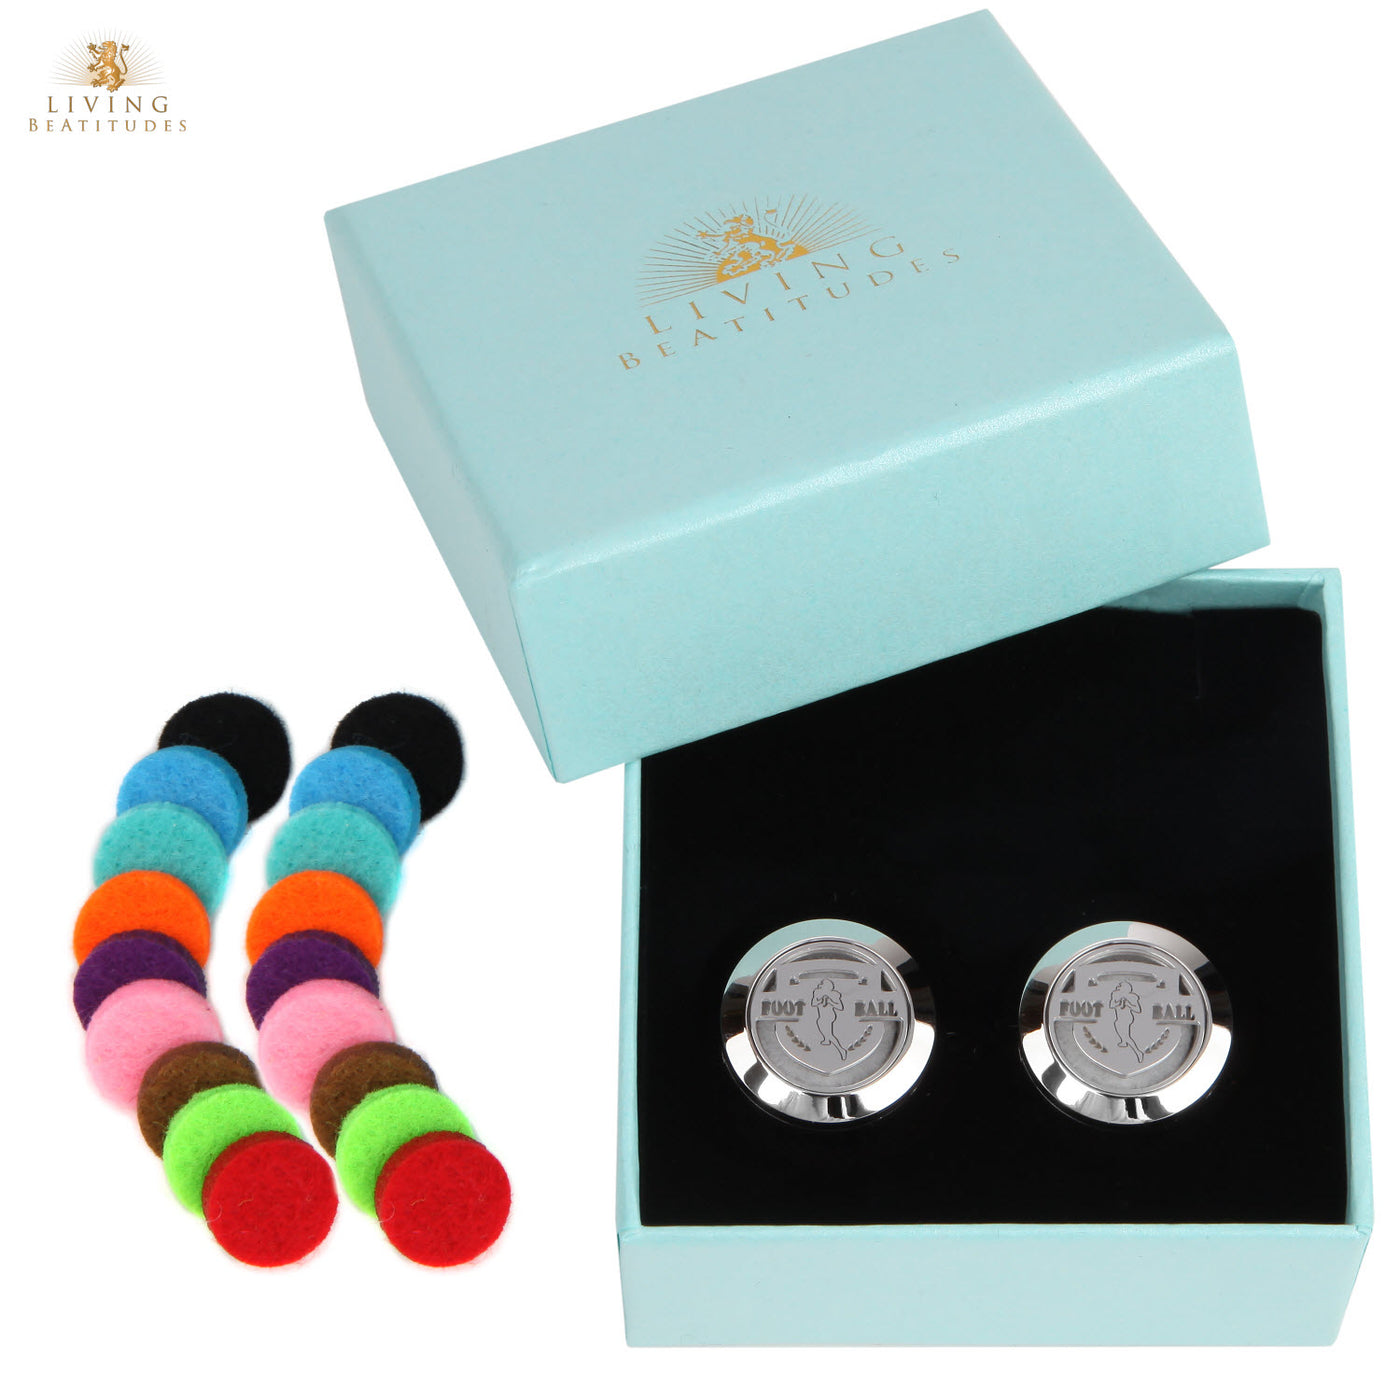 Aromatherapy Essential Oil Diffuser Sport Cufflinks with 20 Colored Hypo-Allergenic Pads